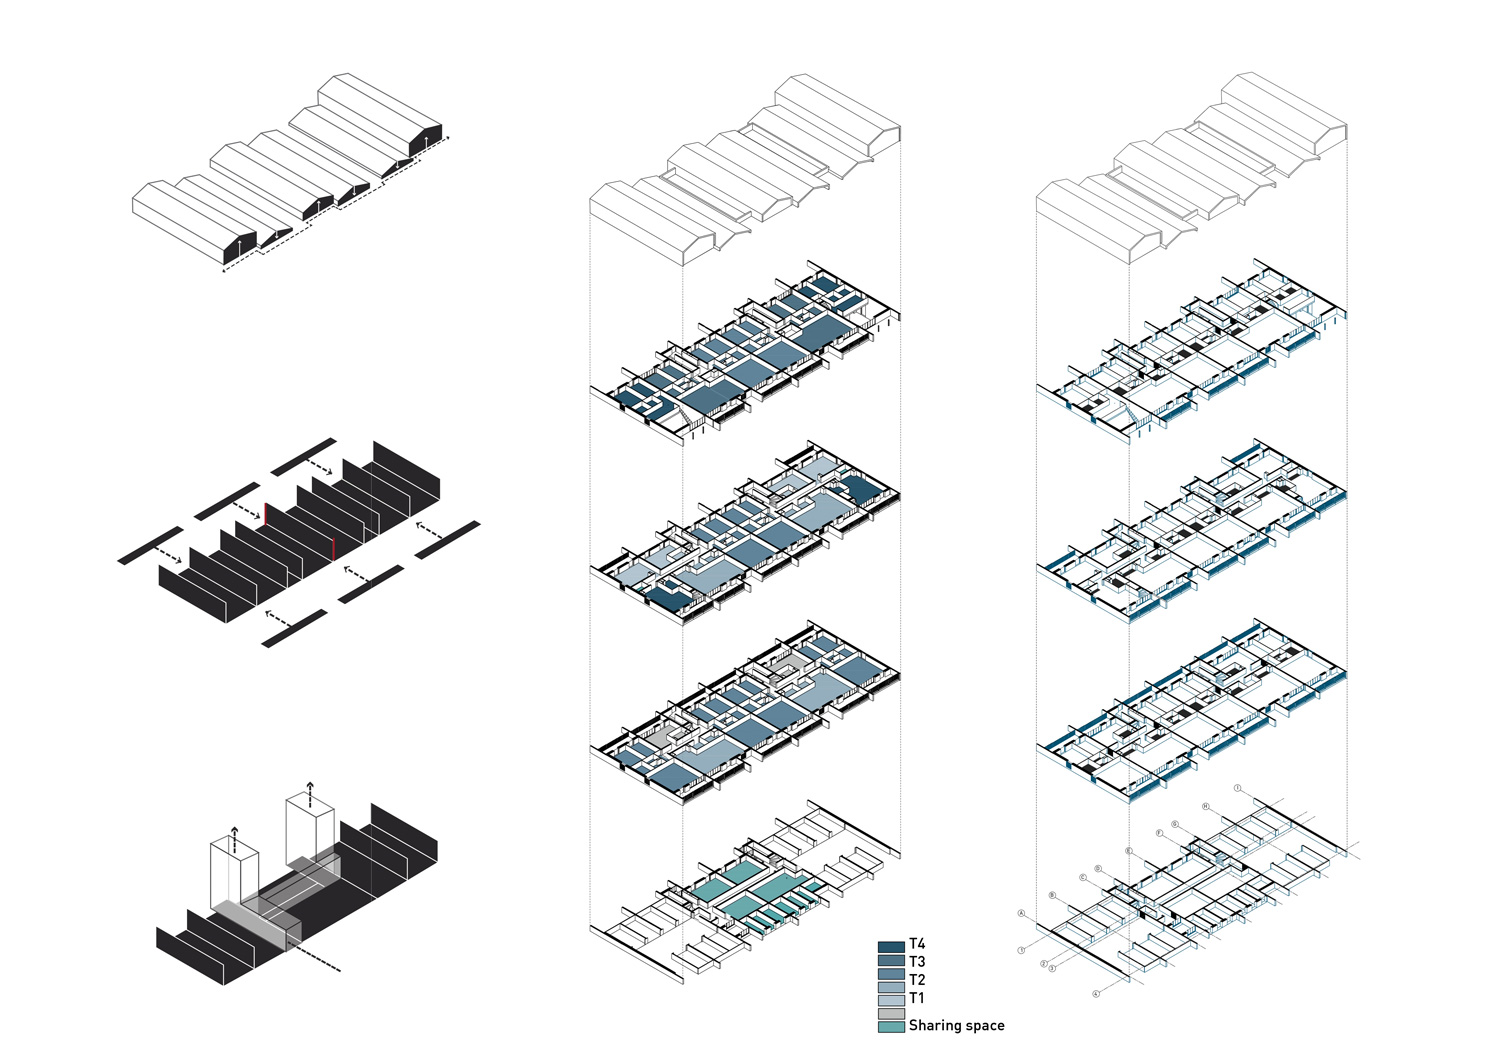 20 Logements Abordable A Besancon R W Playground Beta Architecture Diagram Of Components On Bike In French Institute For The Defined Objectives Which Contest Organizers Have Wanted To Emphasize Are Recalled Here